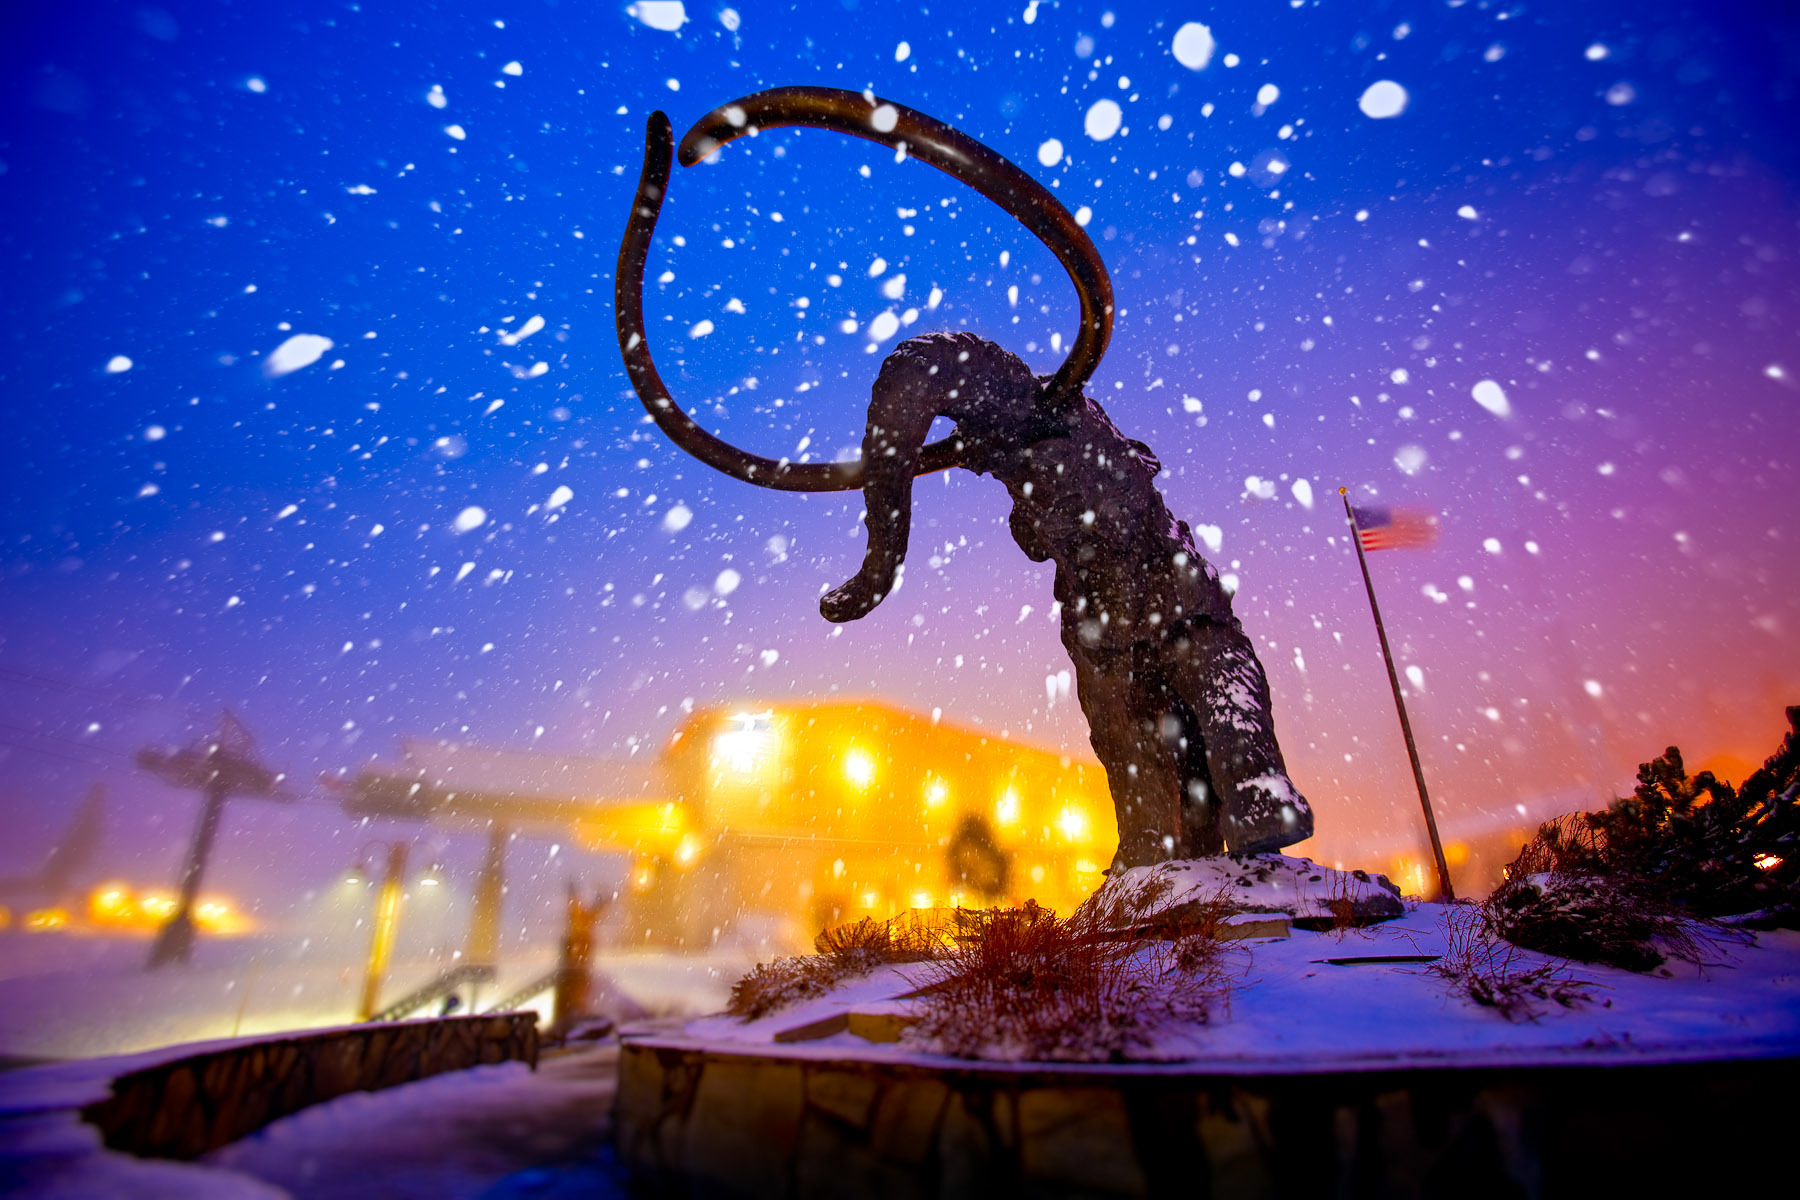 Mammoth in a Snowstorm